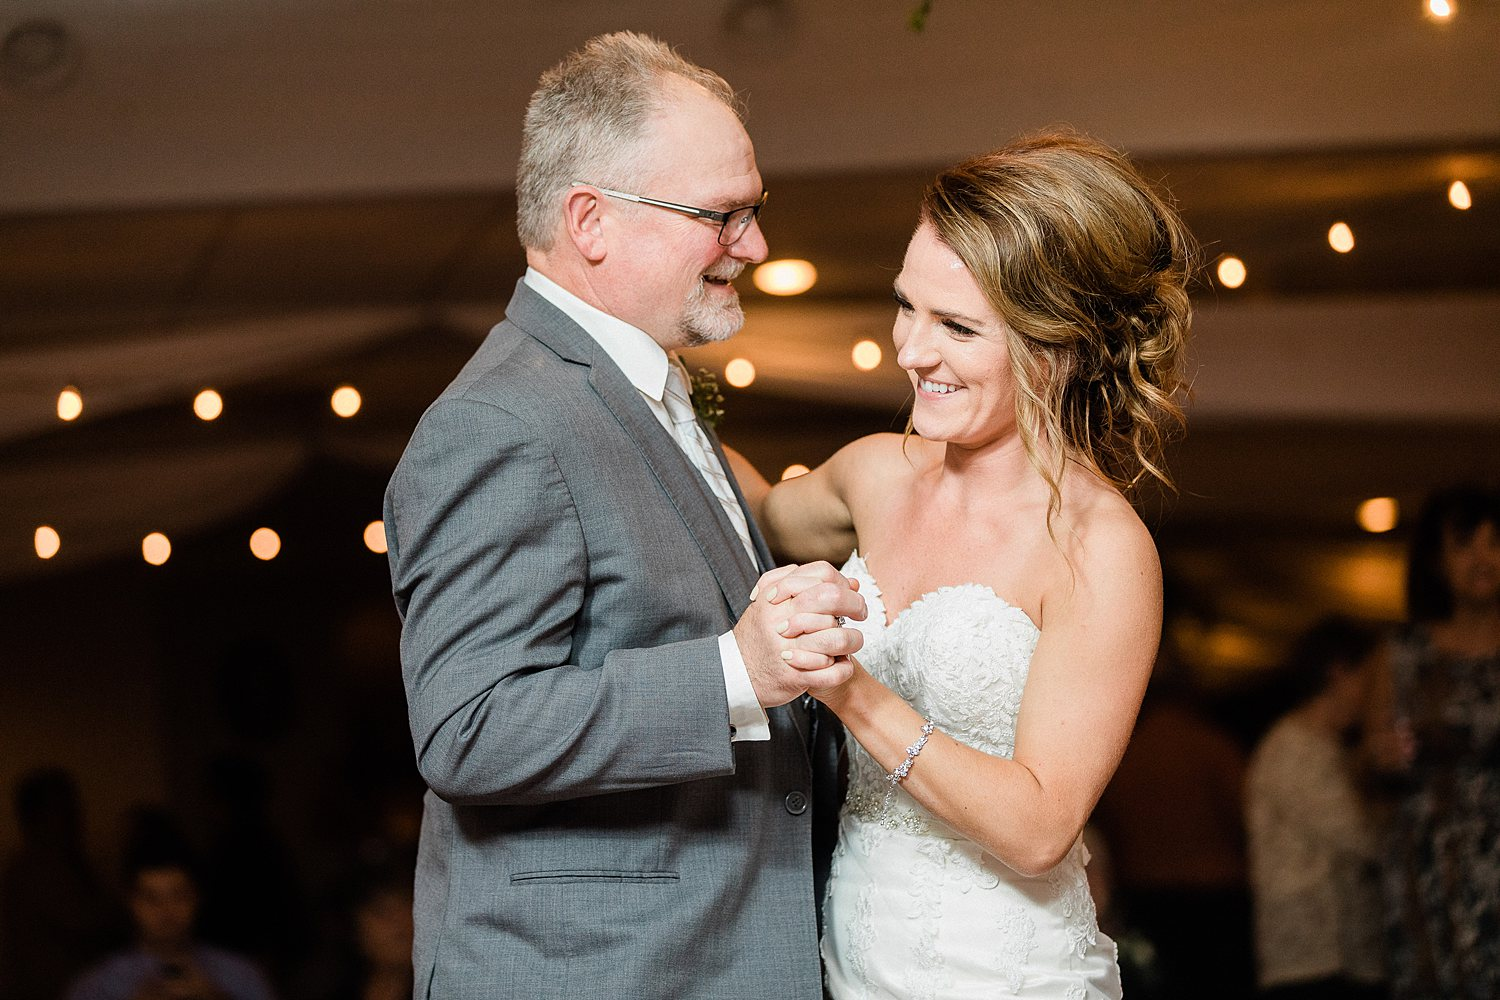 North_Central_Wisconsin_Event_Wedding_Venues_Fall_Weddings_The_Bailiwick_Venue_James-Stokes-Photography104.jpg